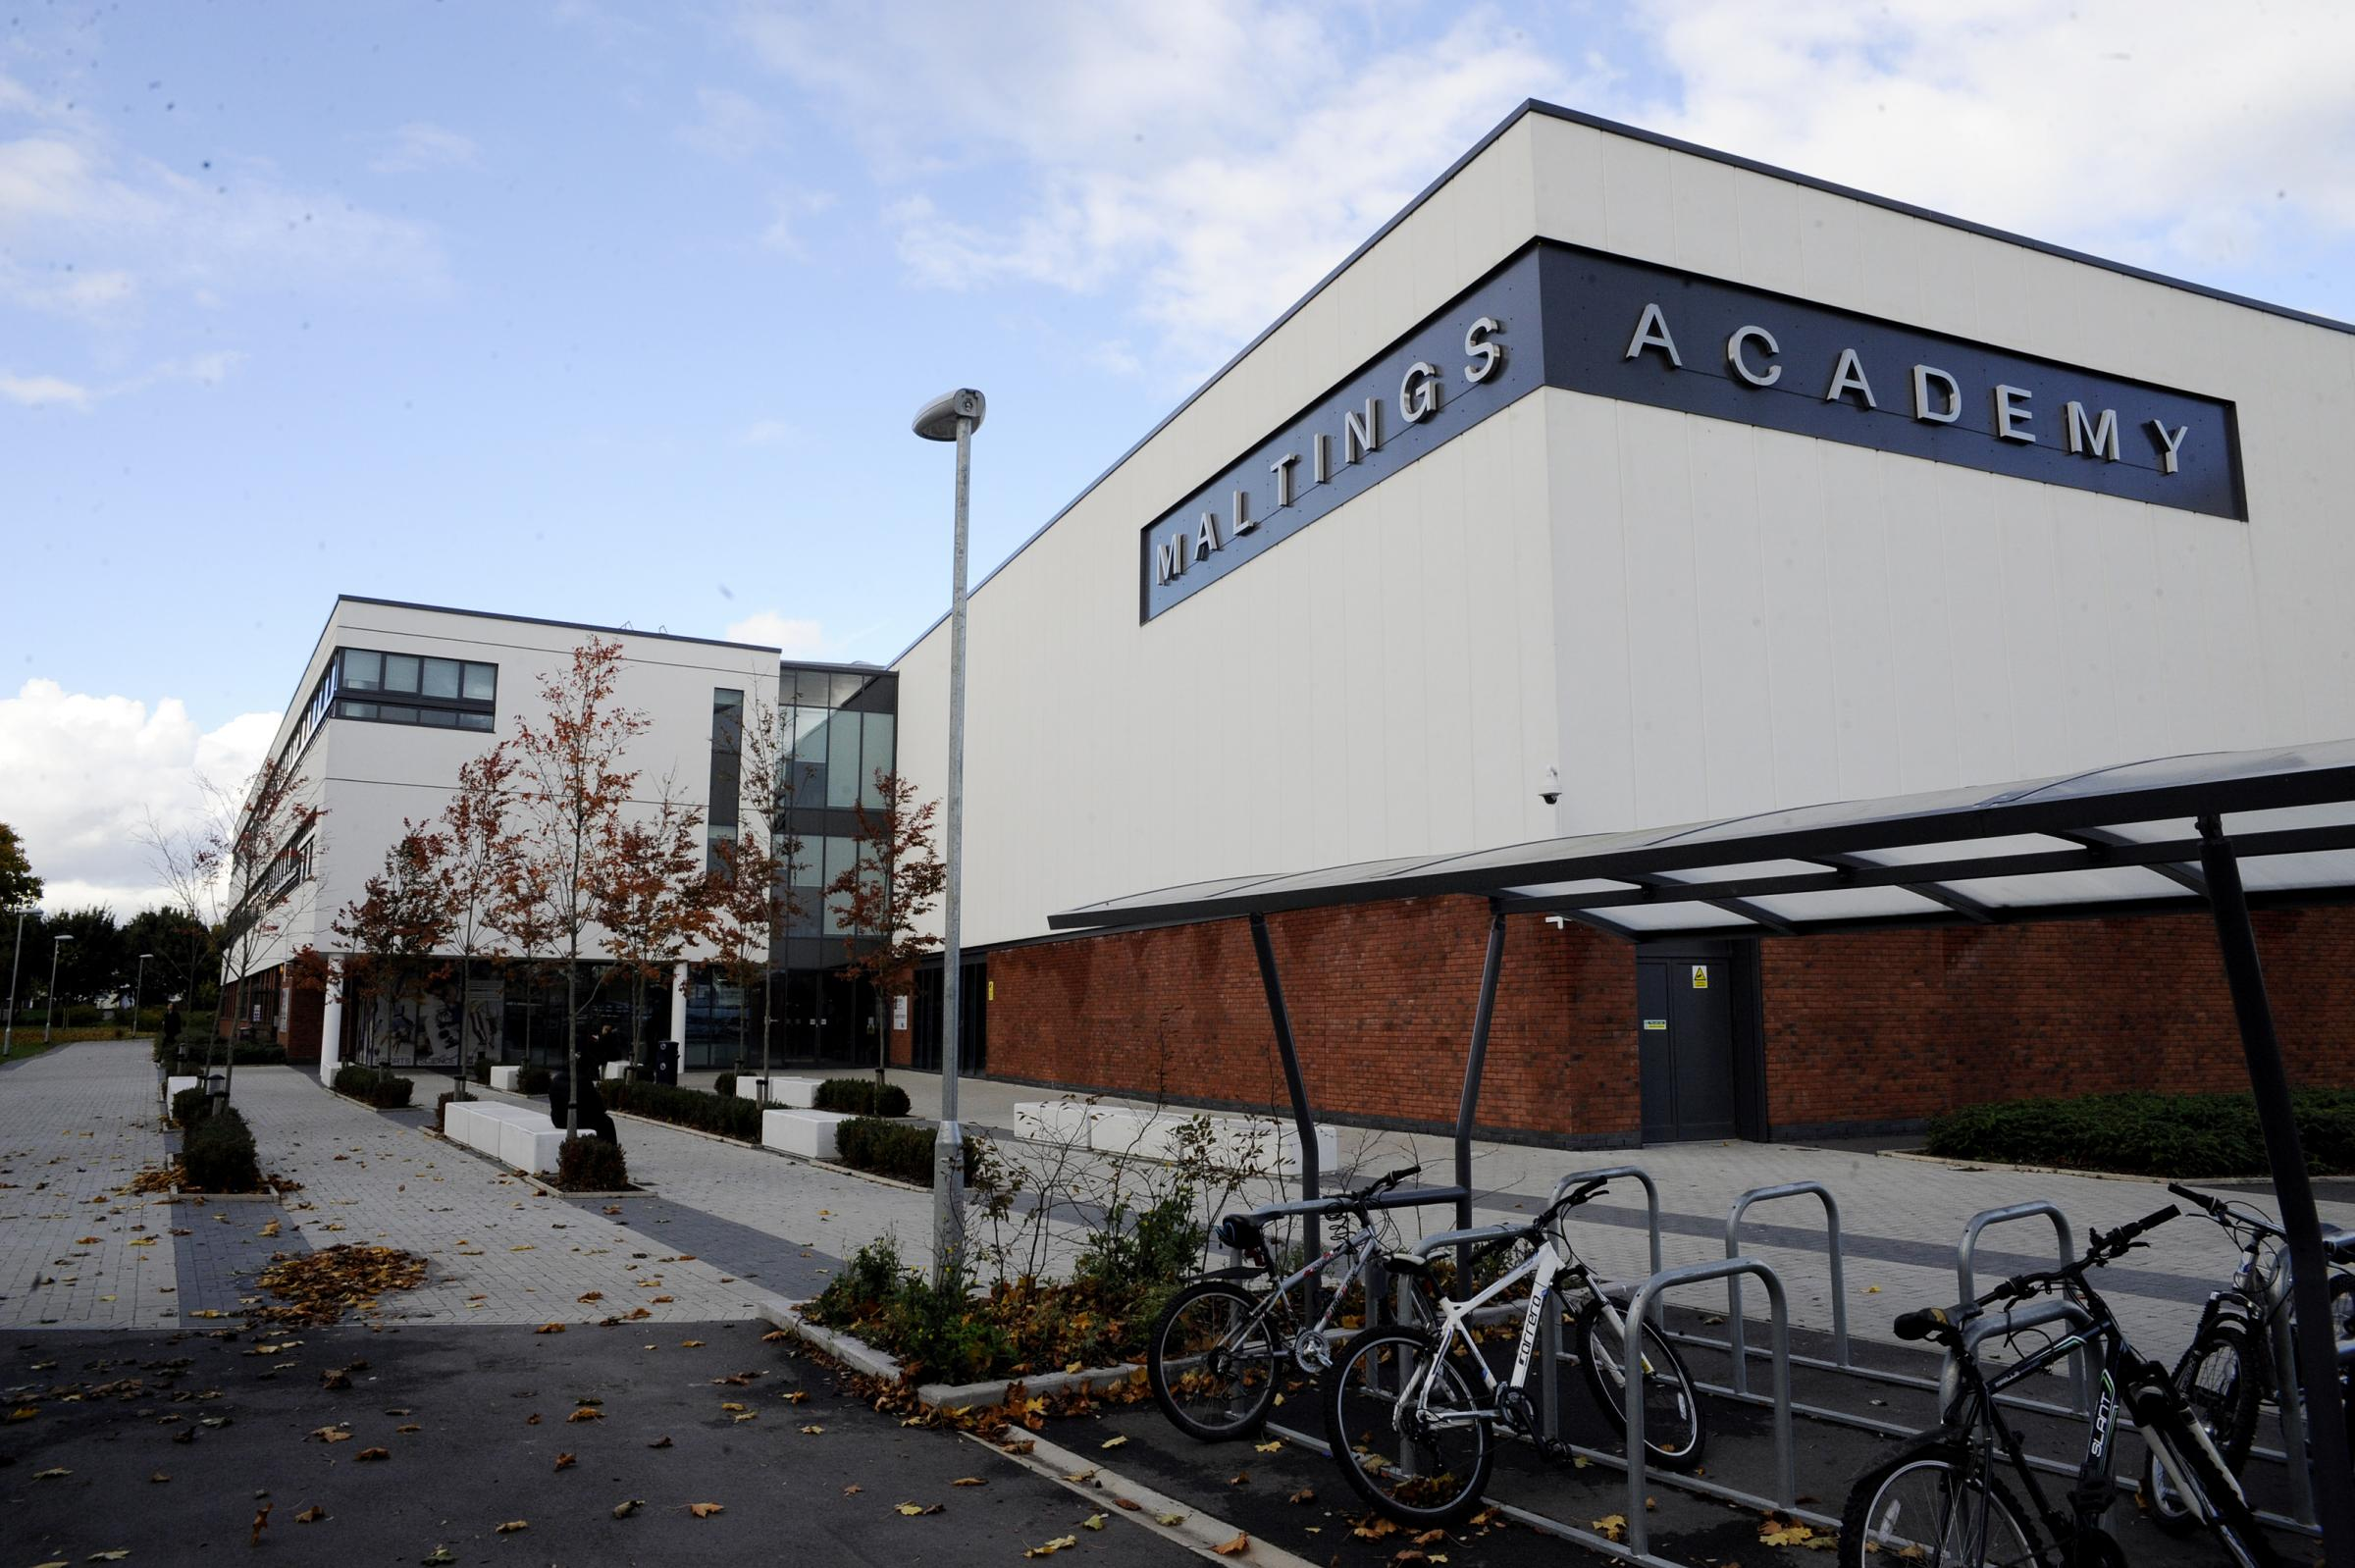 The Maltings Academy, in Spinks Lane, Witham, could be affected by the move.